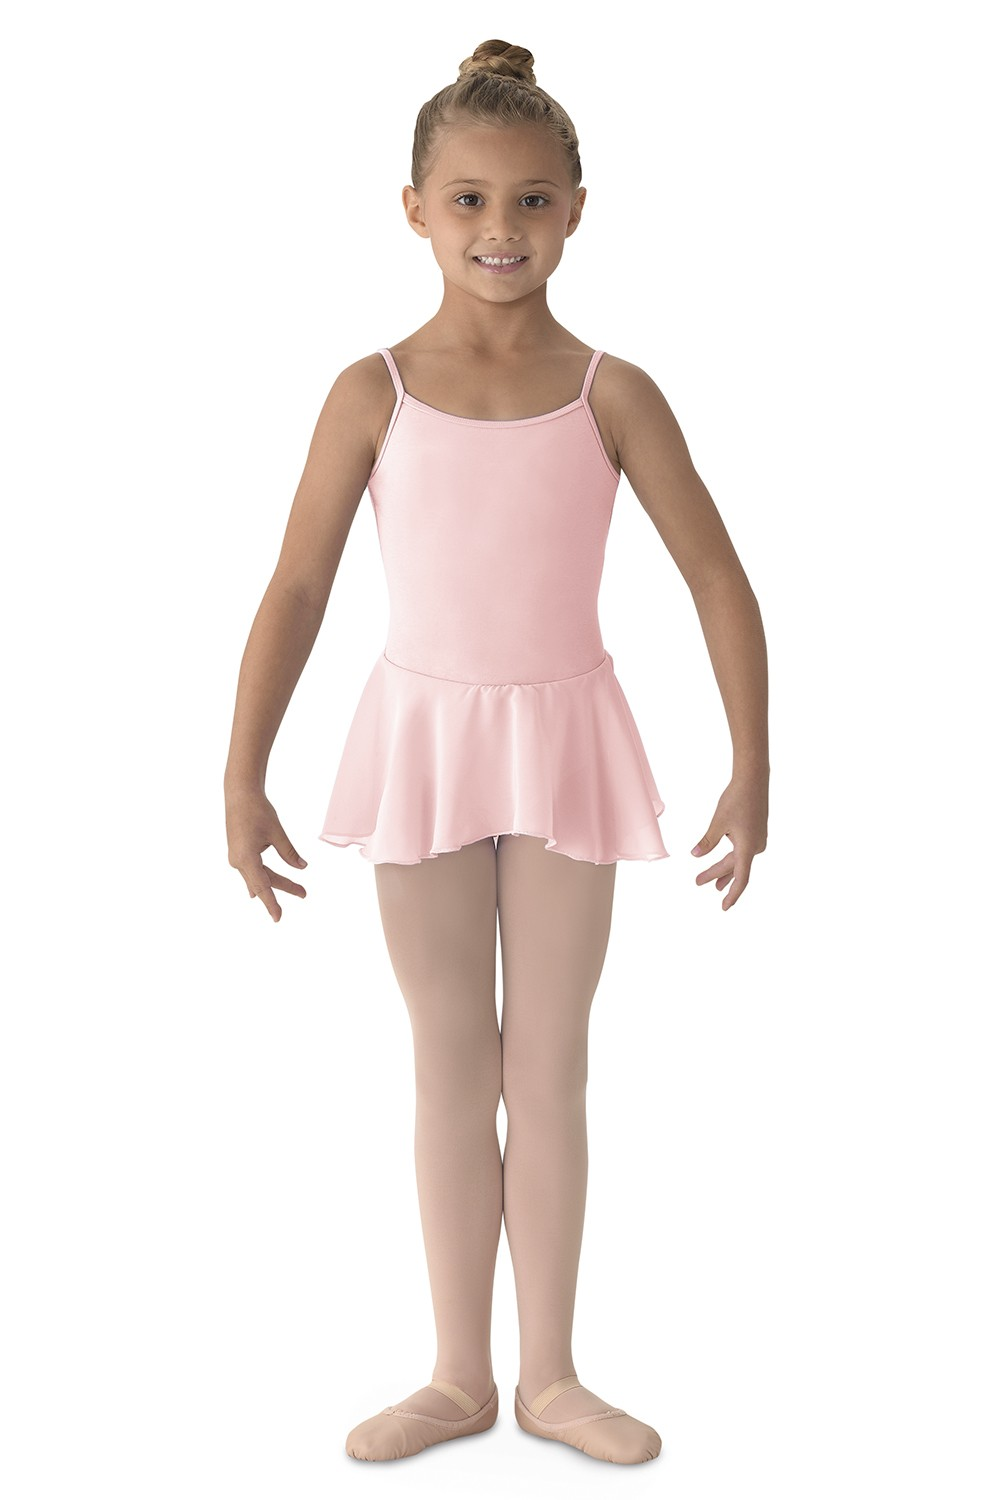 Camisole Dress W/skirt Children's Dance Leotards